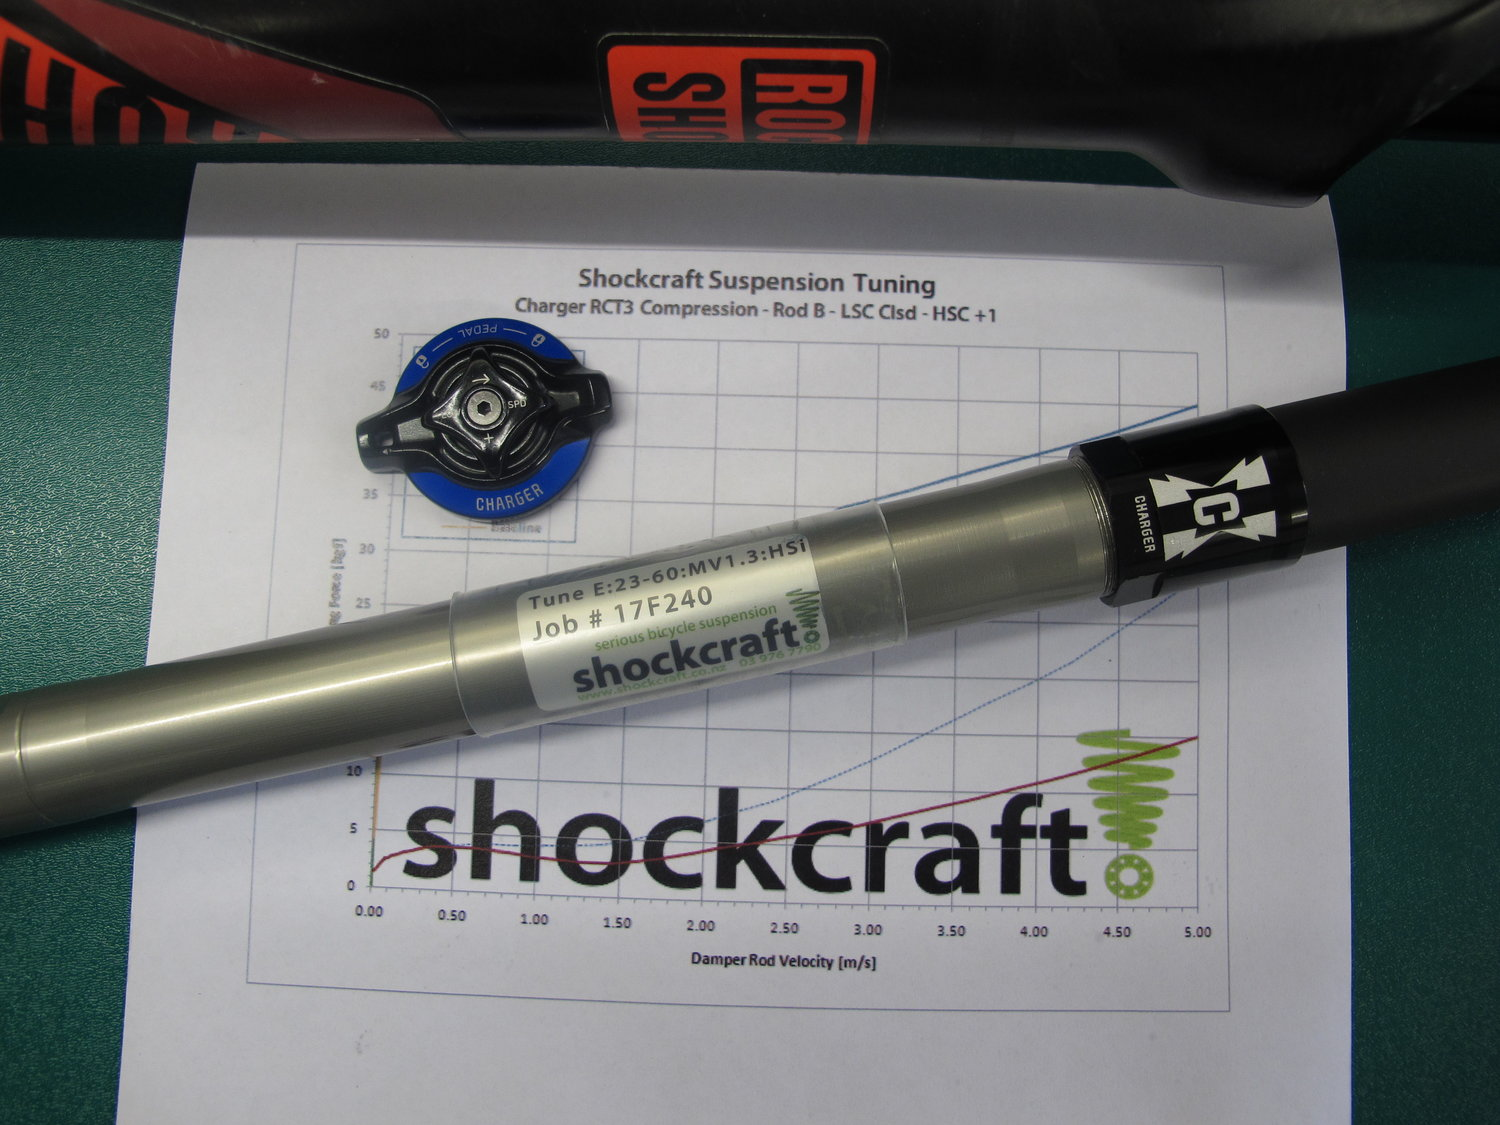 Shockcraft Suspension Matrix Tune for Pike — therodfather